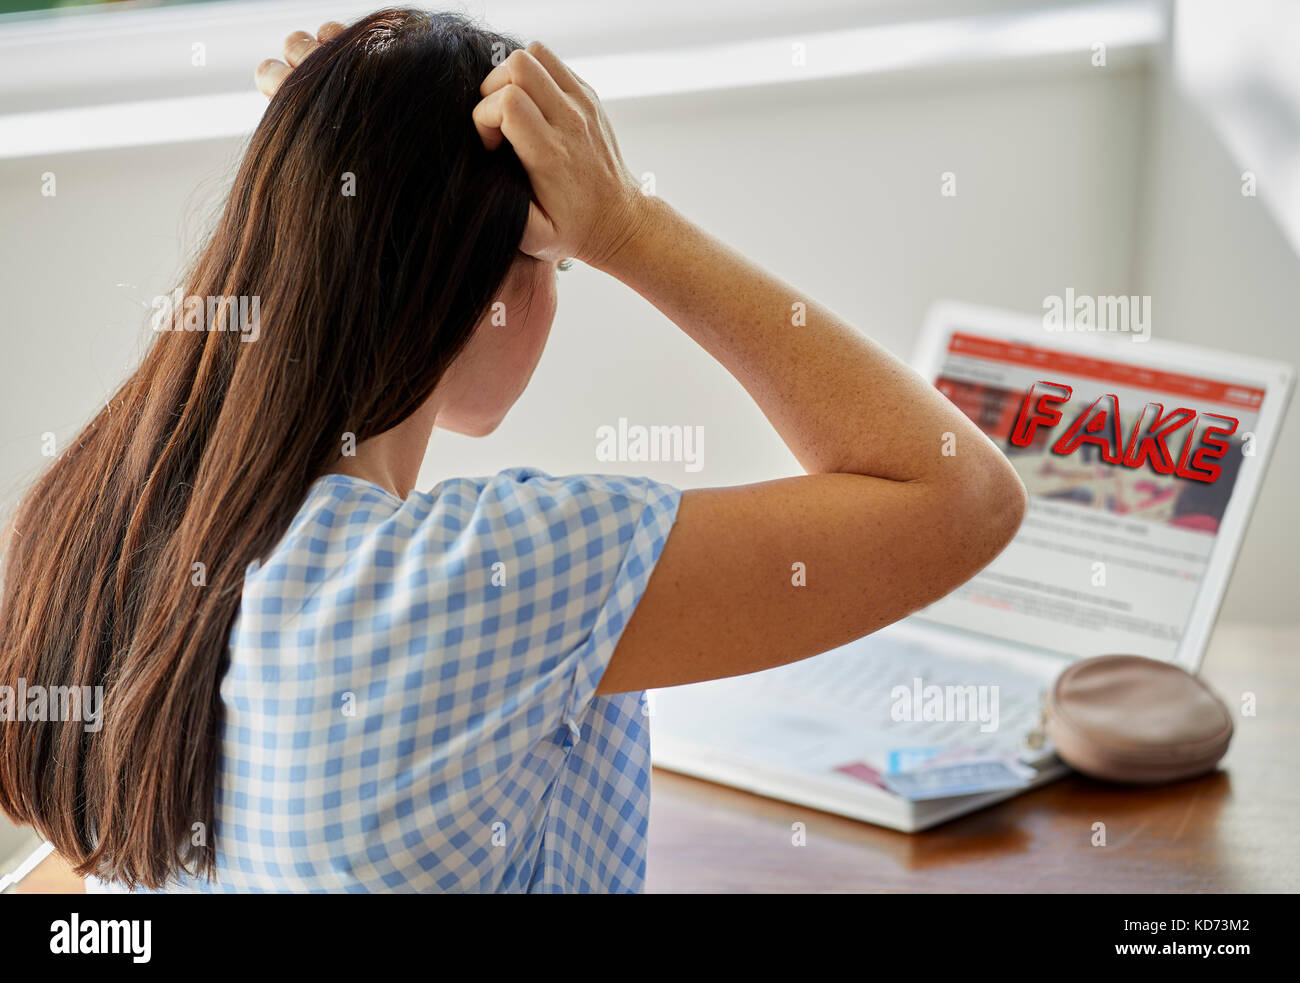 Woman realising she has used a fake website - Stock Image